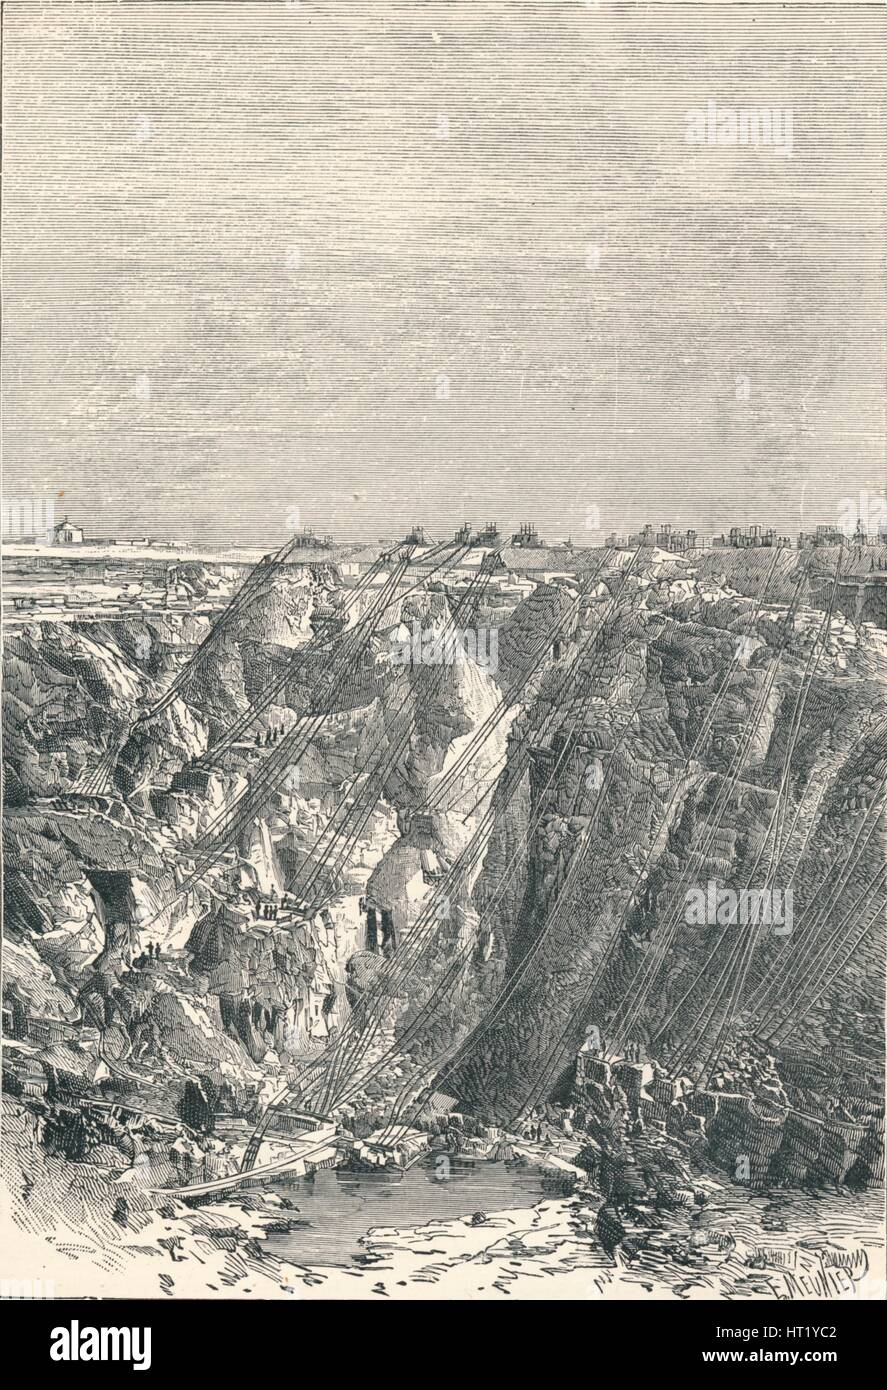 Kimberley: appearance of the diamond mine in 1880, 1896. Artist: Unknown - Stock Image